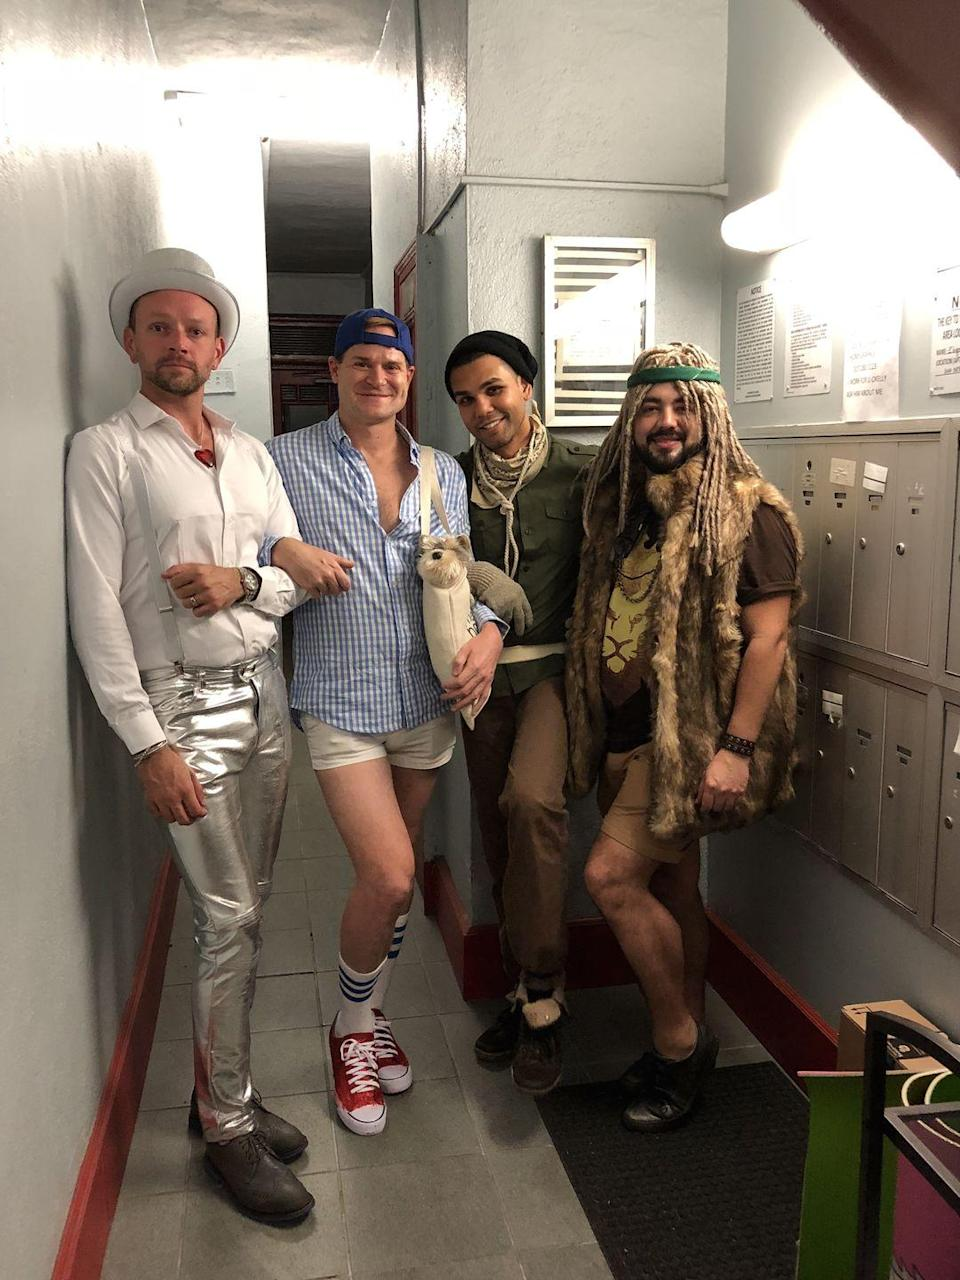 """<p>Think outside of the Yellow Brick Road this Halloween with a creative twist on the classic costume. No need to buy a Dorothy dress or coat yourself in silver paint. Take some creative liberties with your costume using things you already own.</p><p><a class=""""link rapid-noclick-resp"""" href=""""https://www.amazon.com/Converse-Unisex-Chuck-Taylor-Sneakers/dp/B0000AFT0C/?tag=syn-yahoo-20&ascsubtag=%5Bartid%7C10072.g.27868790%5Bsrc%7Cyahoo-us"""" rel=""""nofollow noopener"""" target=""""_blank"""" data-ylk=""""slk:Shop Red Converse"""">Shop Red Converse</a></p><p><a class=""""link rapid-noclick-resp"""" href=""""https://www.amazon.com/Rebecca-Metallic-Holographic-Sweatpant-Tapered/dp/B07Y2MRZZL/?tag=syn-yahoo-20&ascsubtag=%5Bartid%7C10072.g.27868790%5Bsrc%7Cyahoo-us"""" rel=""""nofollow noopener"""" target=""""_blank"""" data-ylk=""""slk:Shop Shiny Metallic Pants"""">Shop Shiny Metallic Pants</a></p>"""